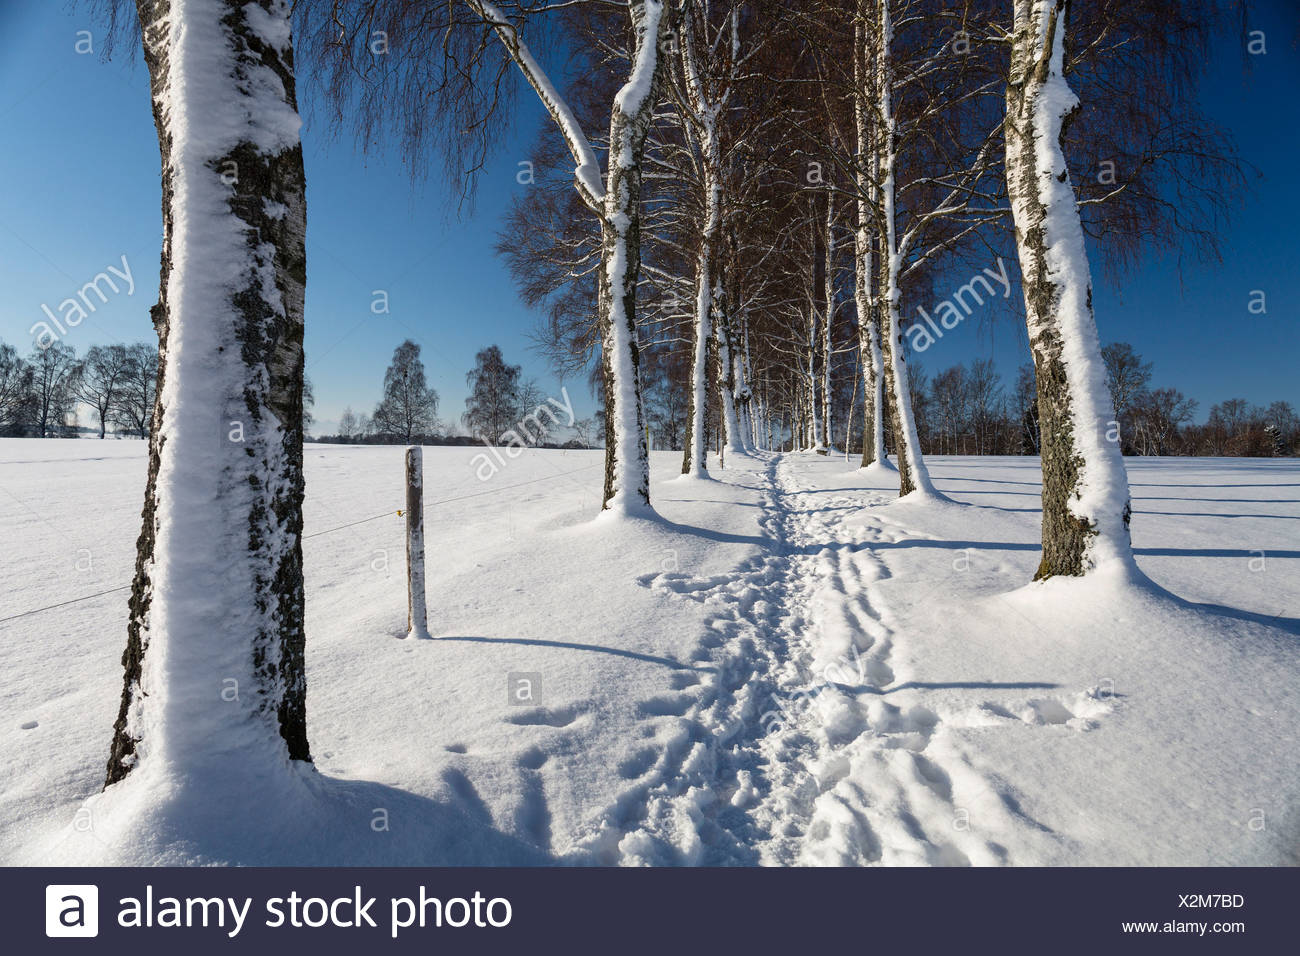 Snow-covered tree-lined path, Oberbayern, Uffing, Bavaria, Germany - Stock Image